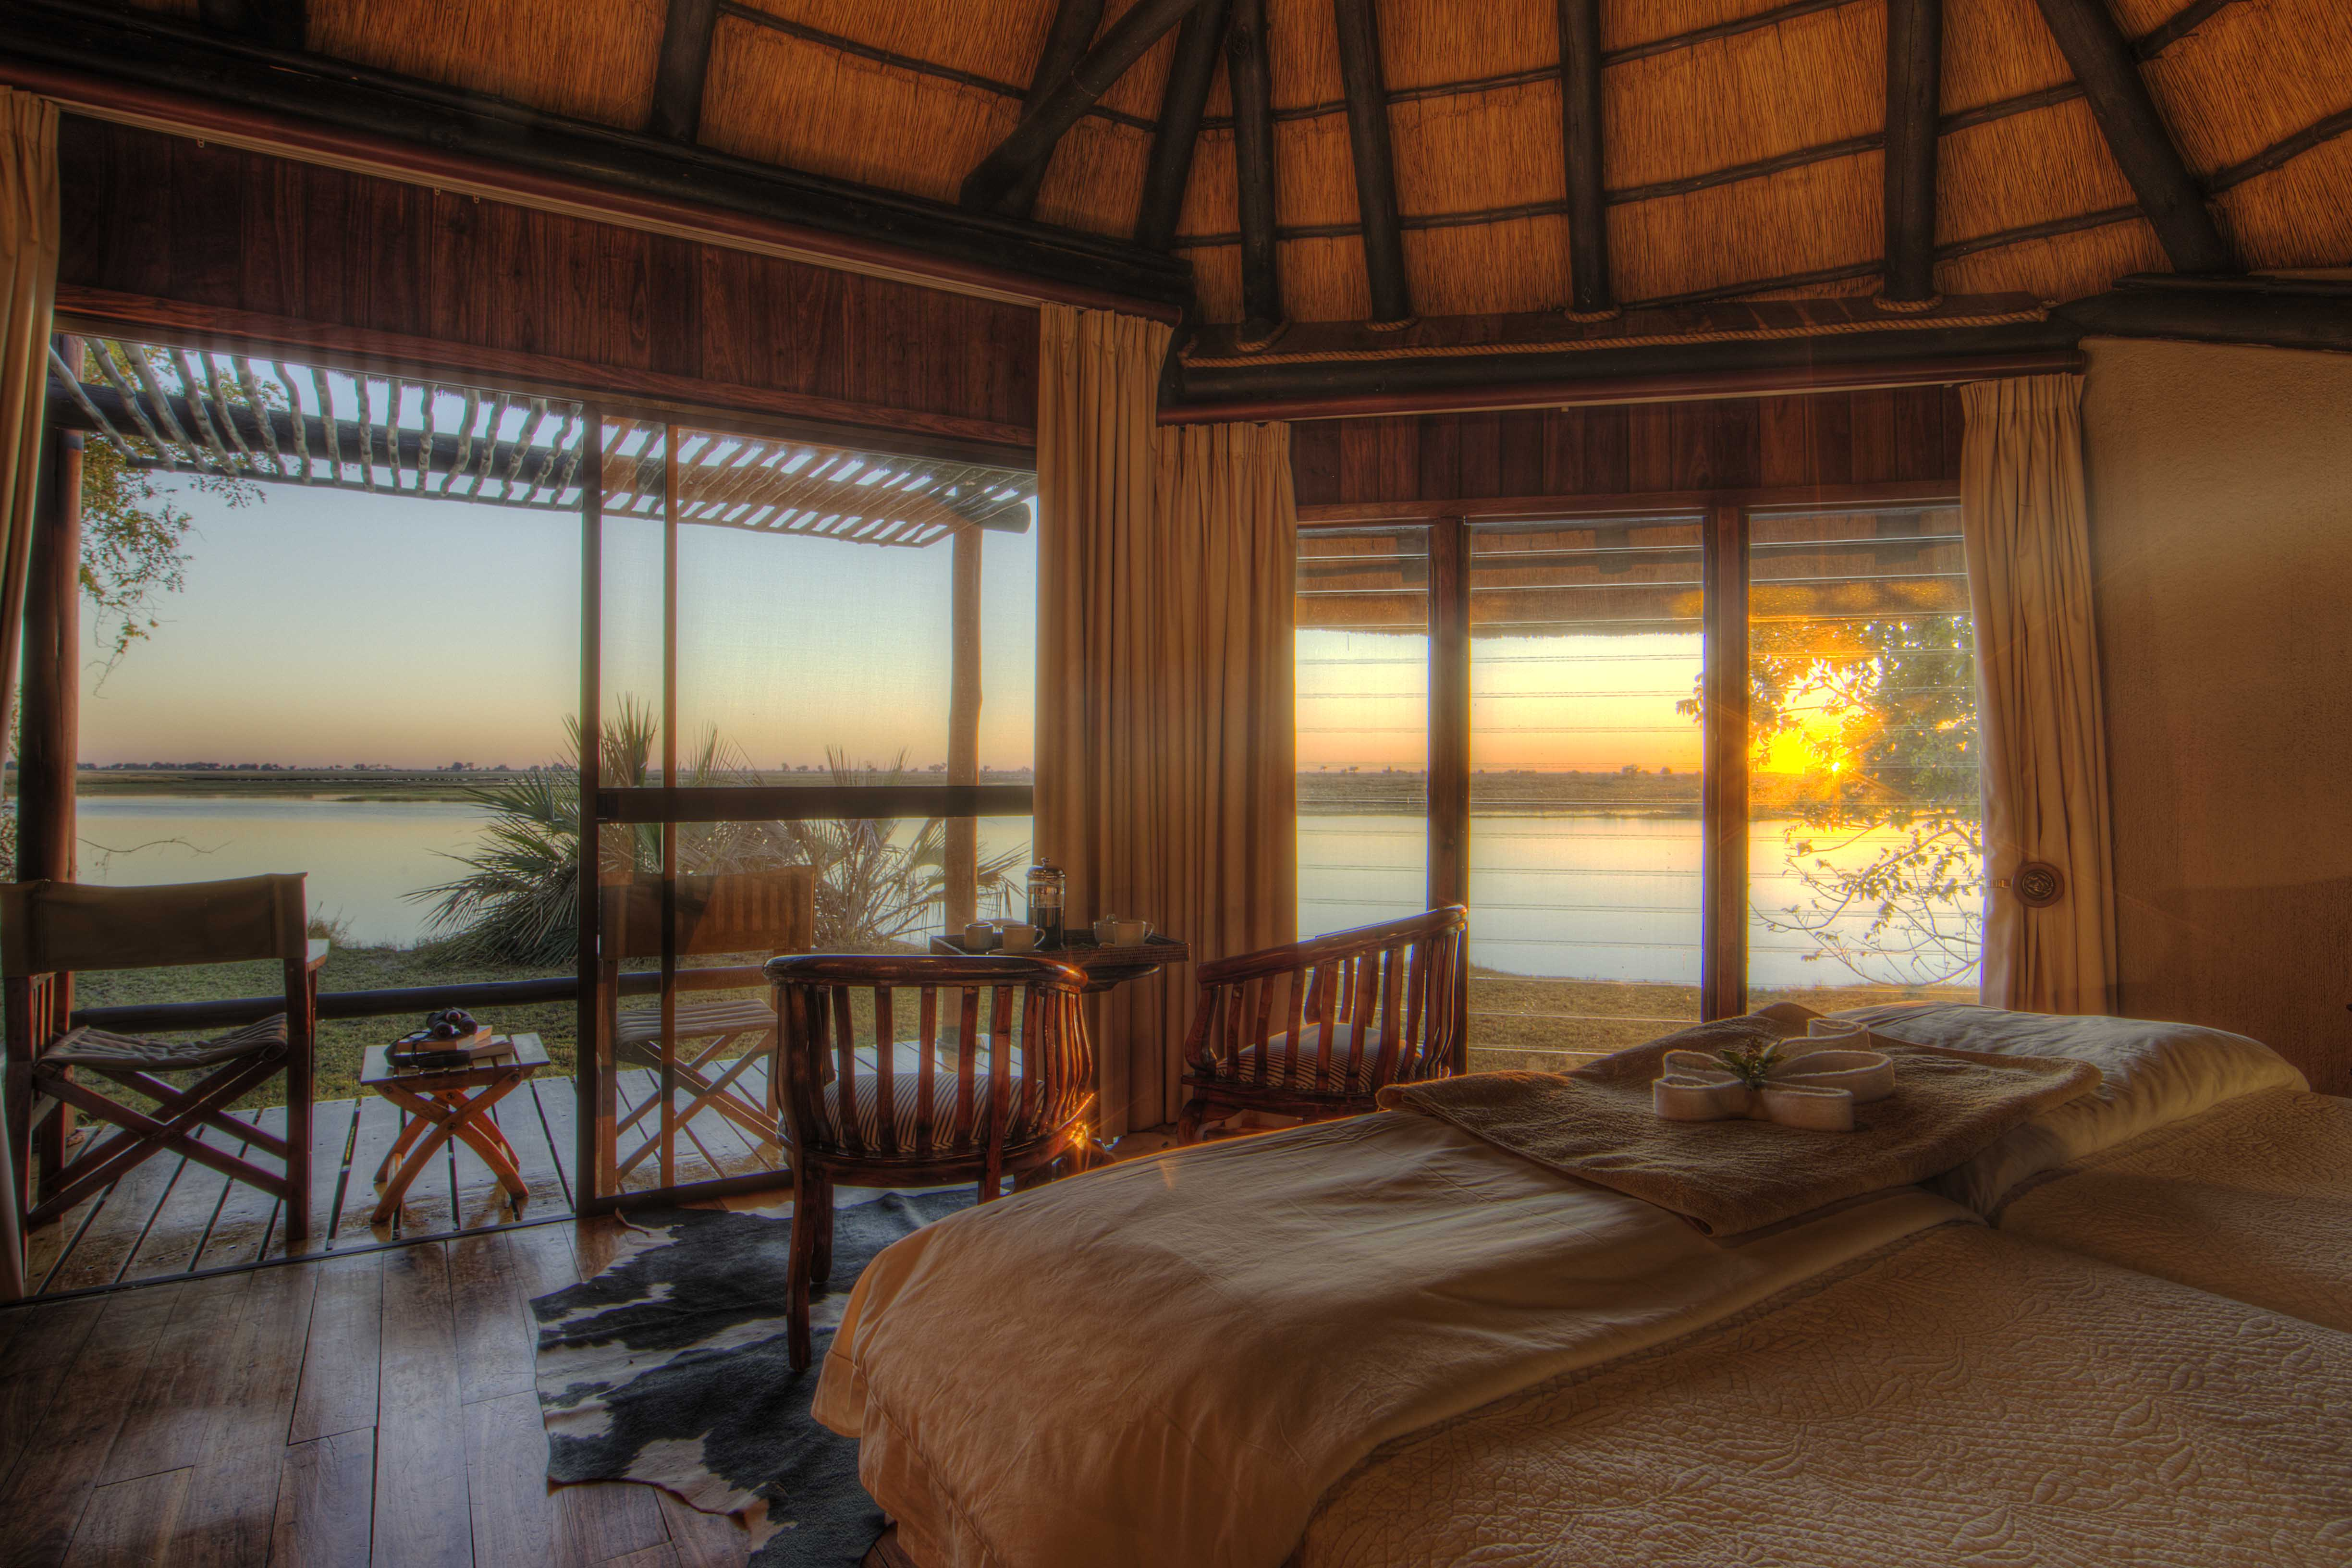 Chobe Savanna Lodge